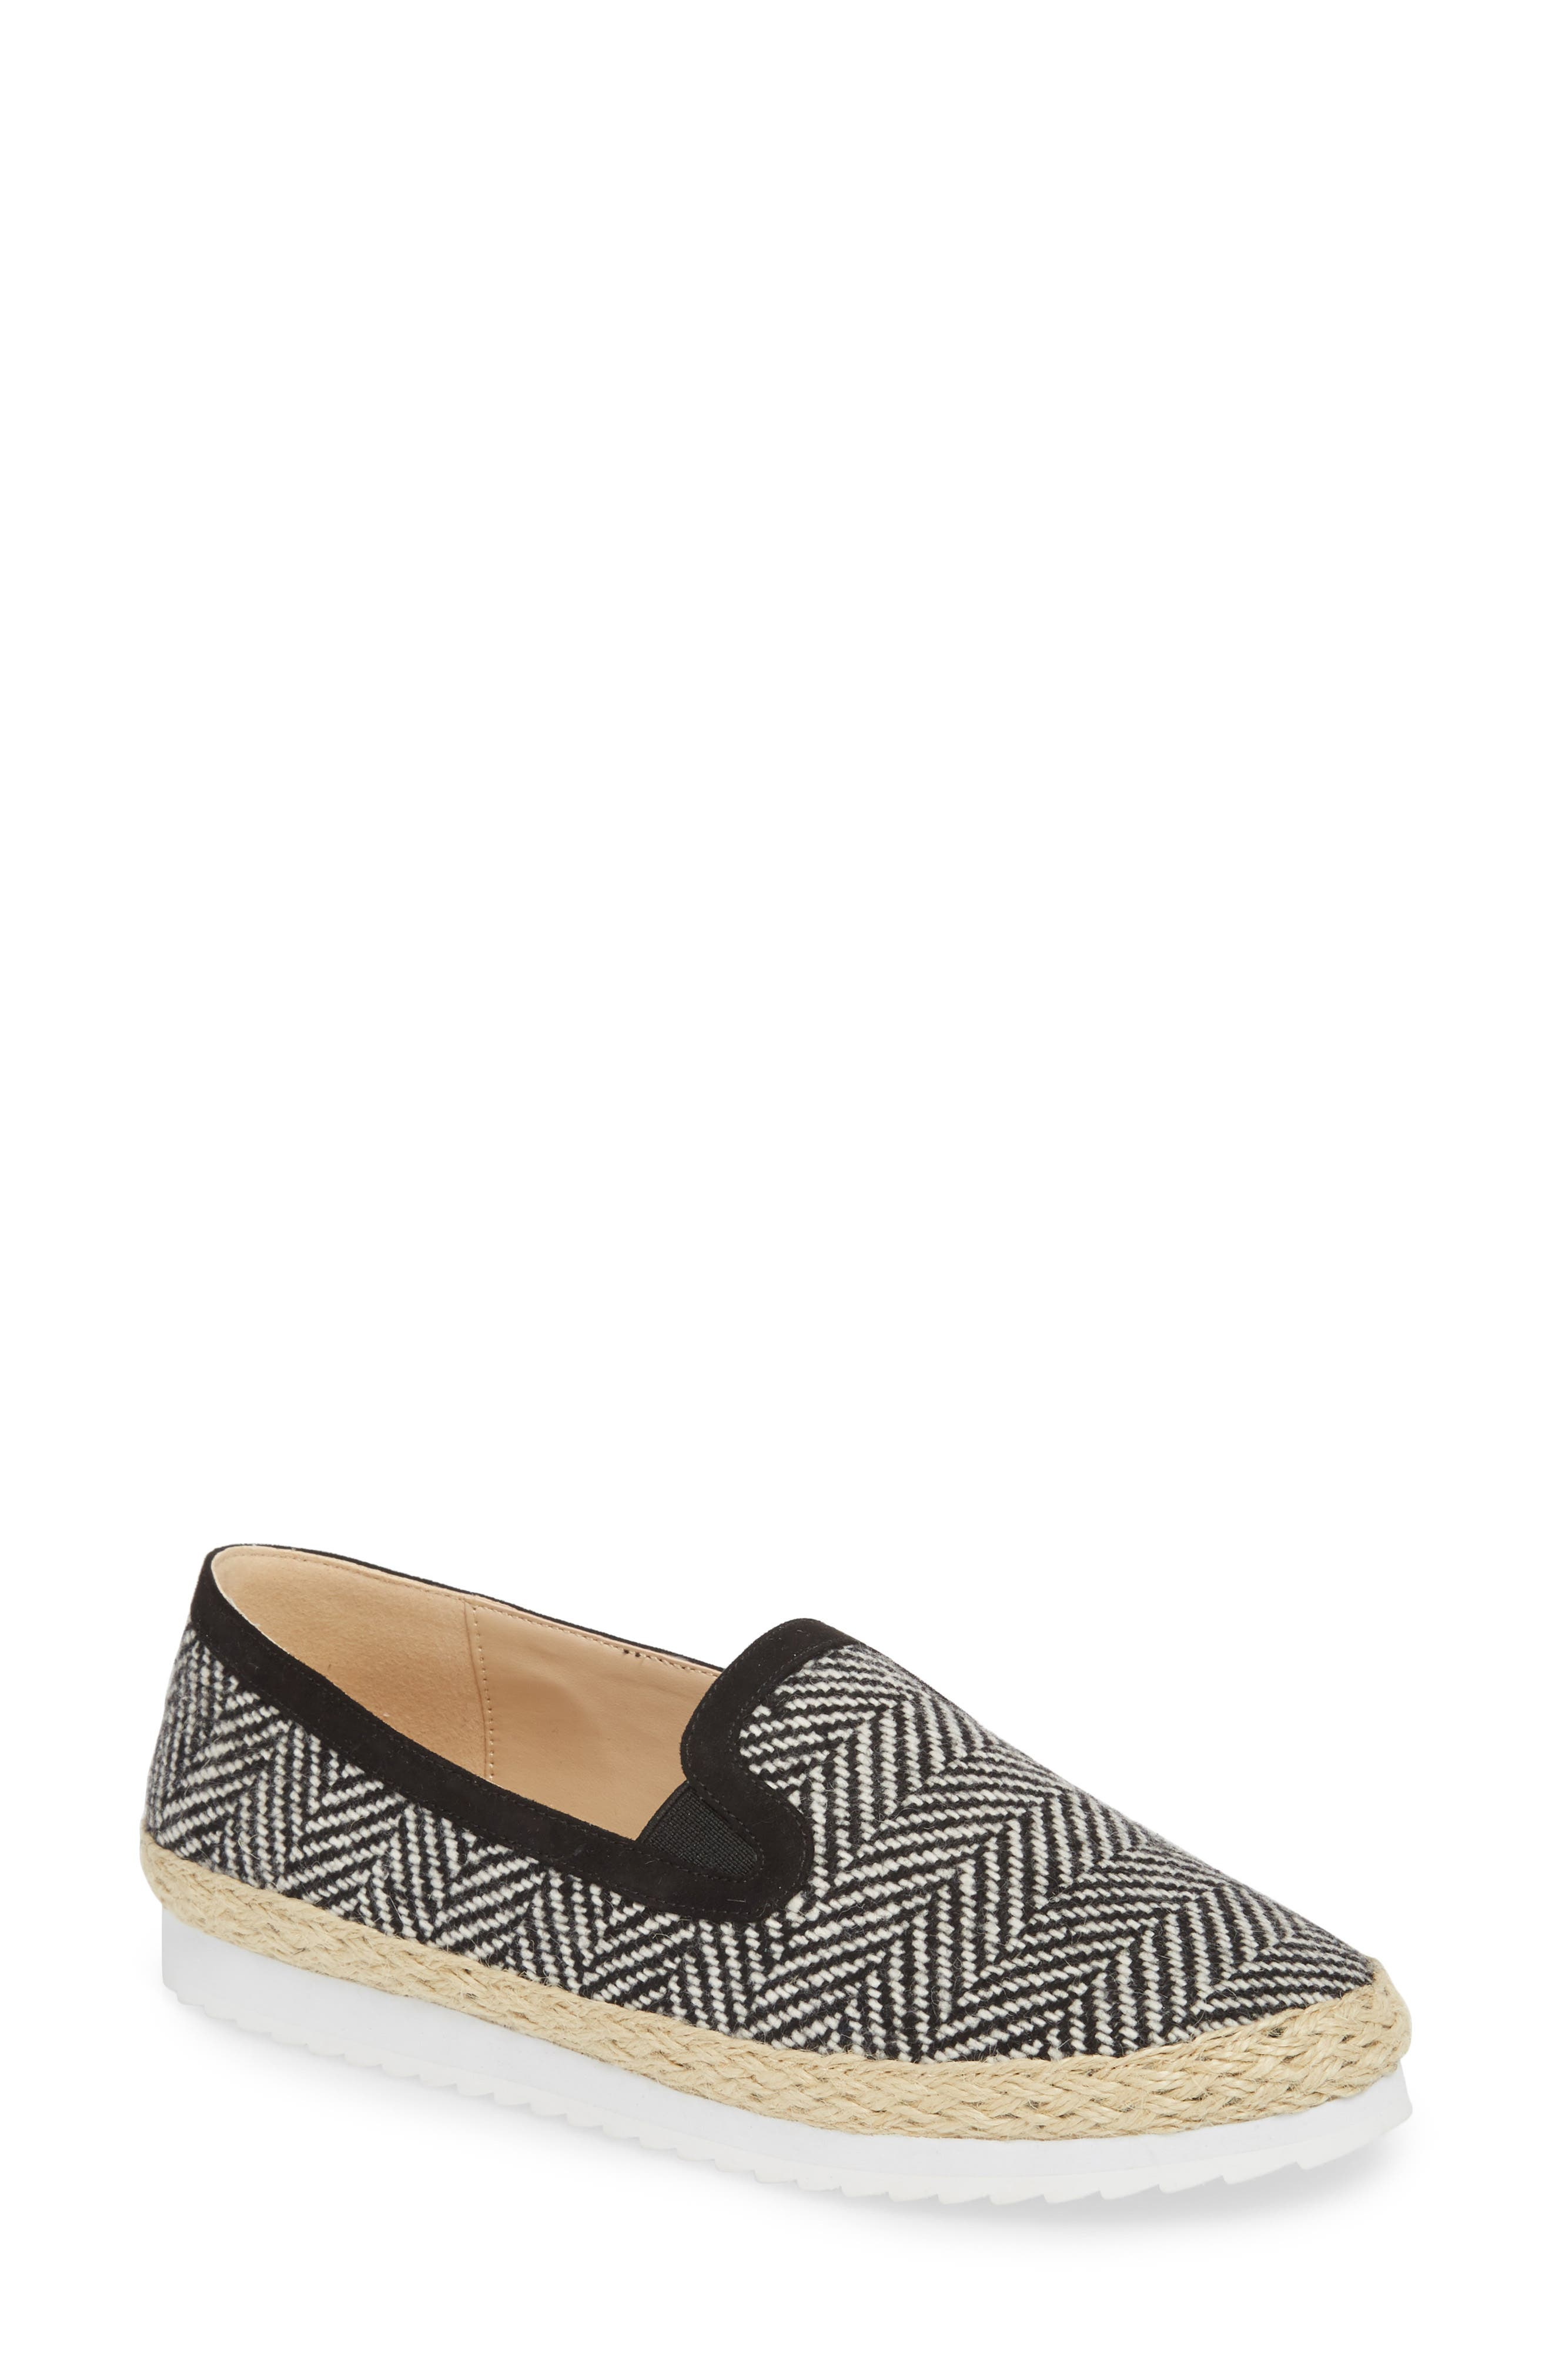 Tight Line Espadrille Flat,                             Main thumbnail 1, color,                             BLACK HOUNDSTOOTH FABRIC